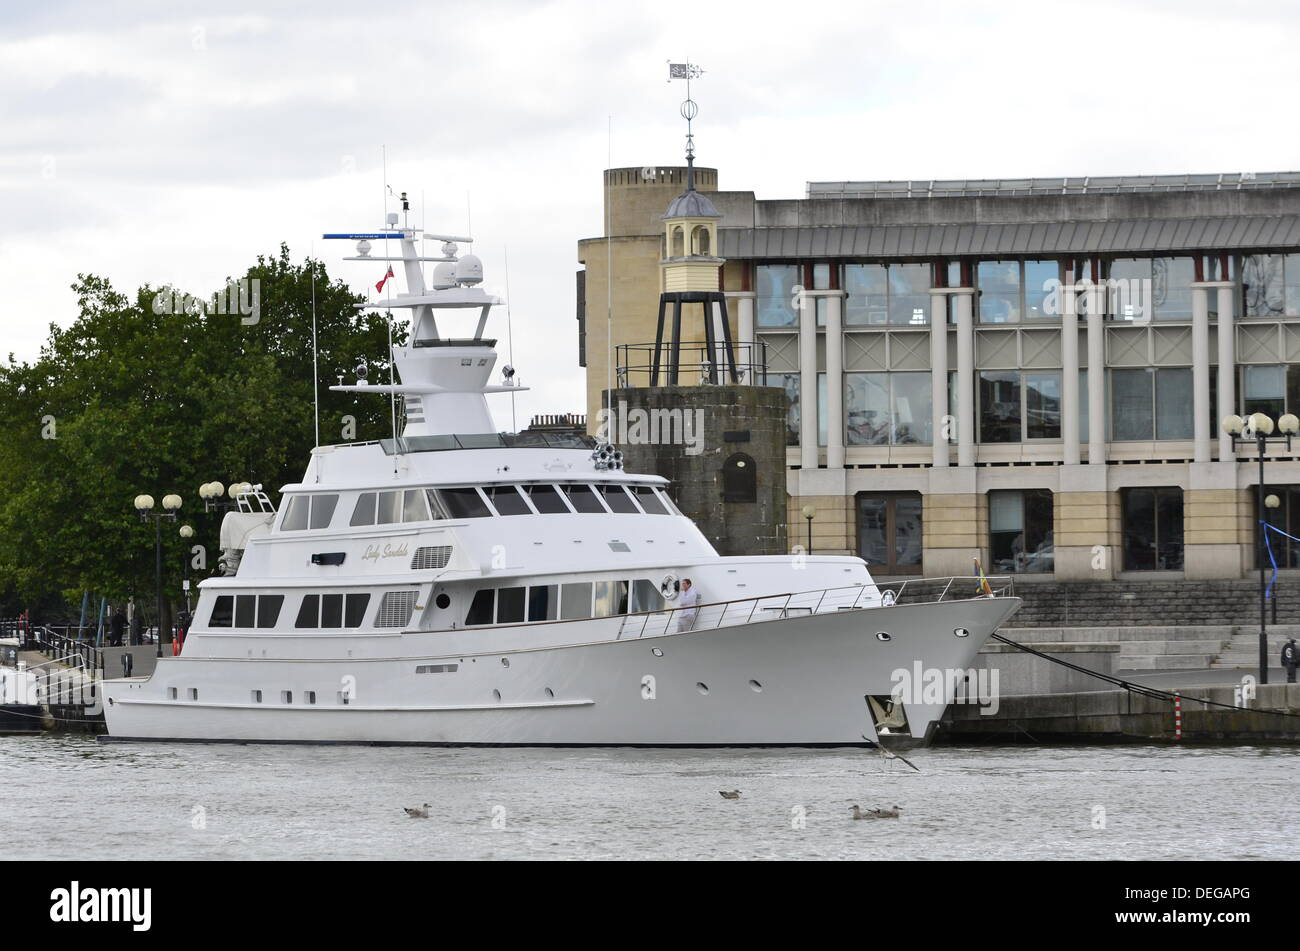 Super Yacht ,Lady Sandals seen docked in Bristol Harbourside UK. Once owned by Hollywood Super Star Nicolas Cage,Long beach California, United States of America. - Stock Image